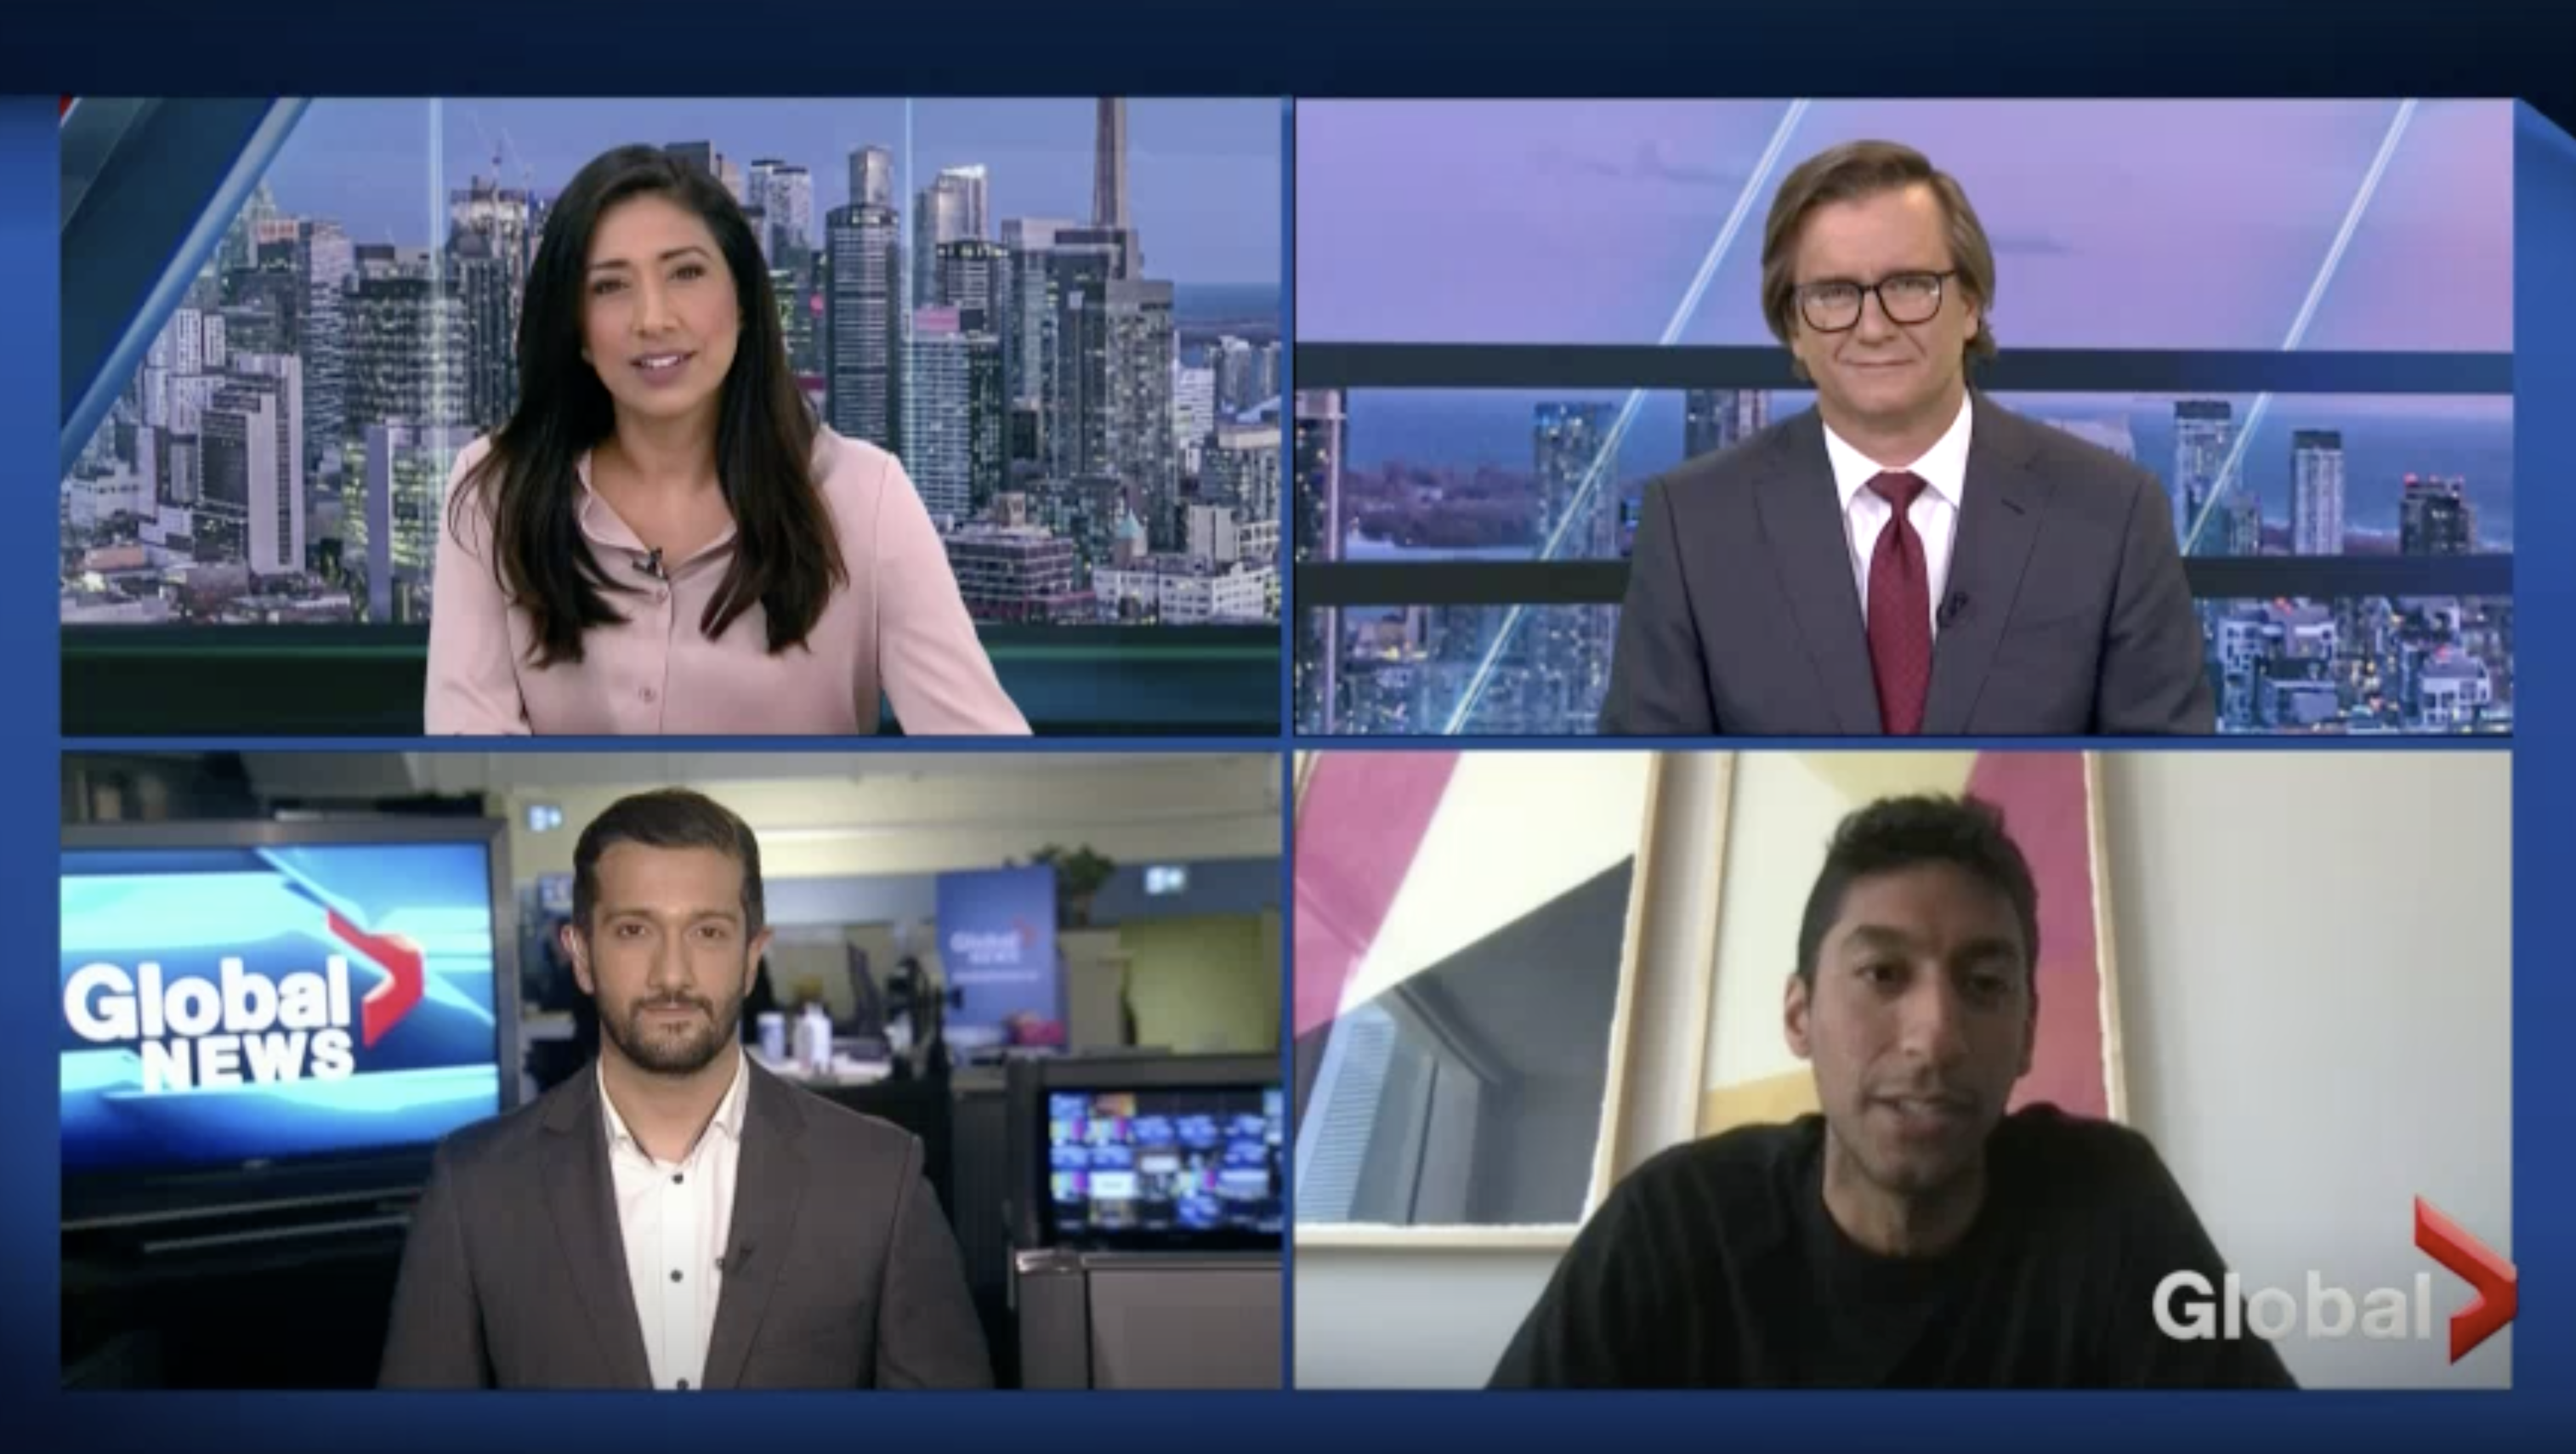 Zain appeared as a guest on a news broadcast hosted by Global News Toronto anchor Farah Nasser, along with reporter Kamil Karamali and Farah's co-anchor Alan Carter, to discuss his texting tool.